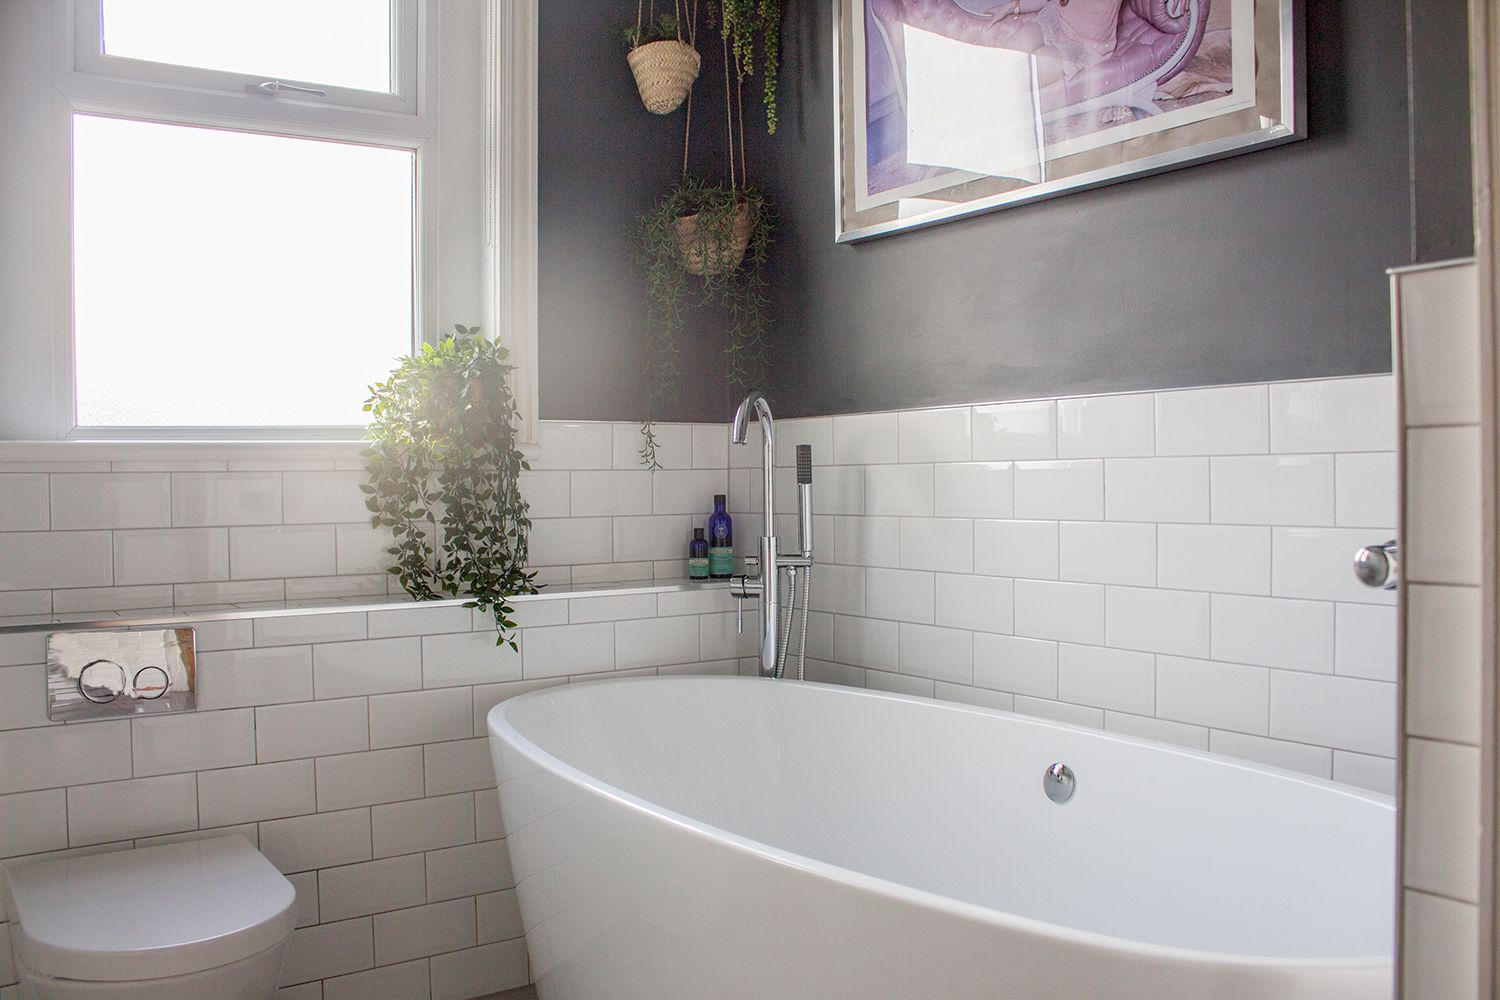 A photo of the bathroom showing the bath, window with new blind, dark walls and metro tiles with hanging planters.